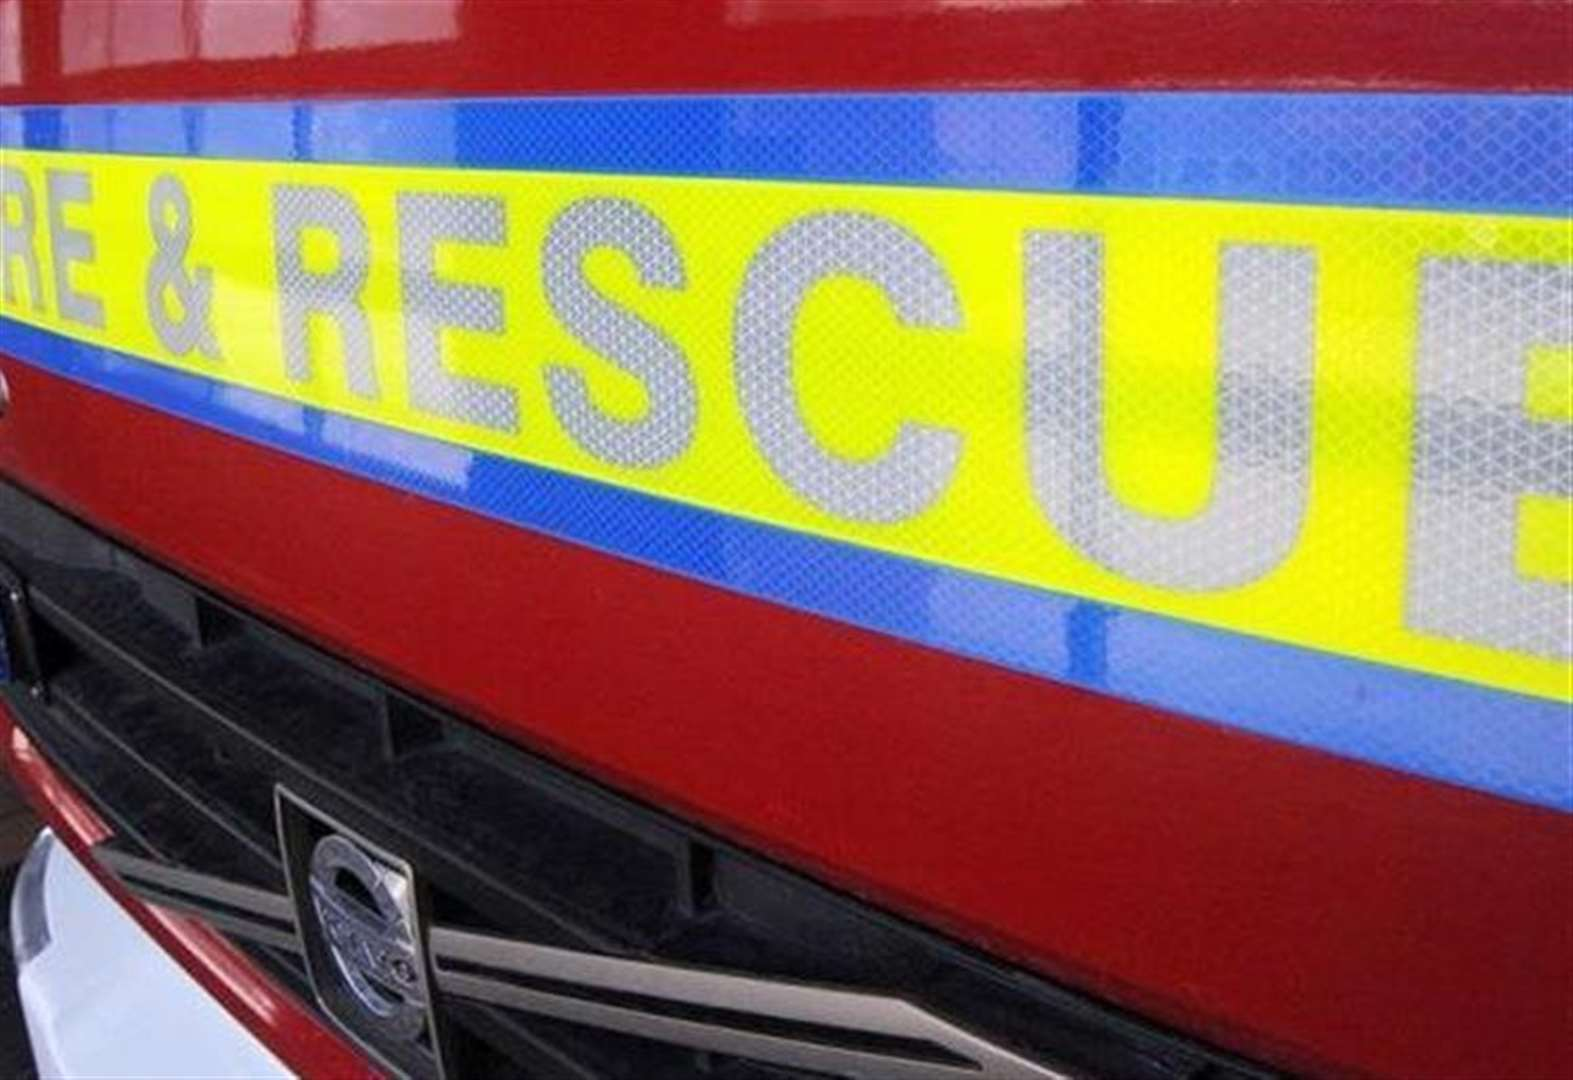 Swaffham residents to have say on fire service switch proposal